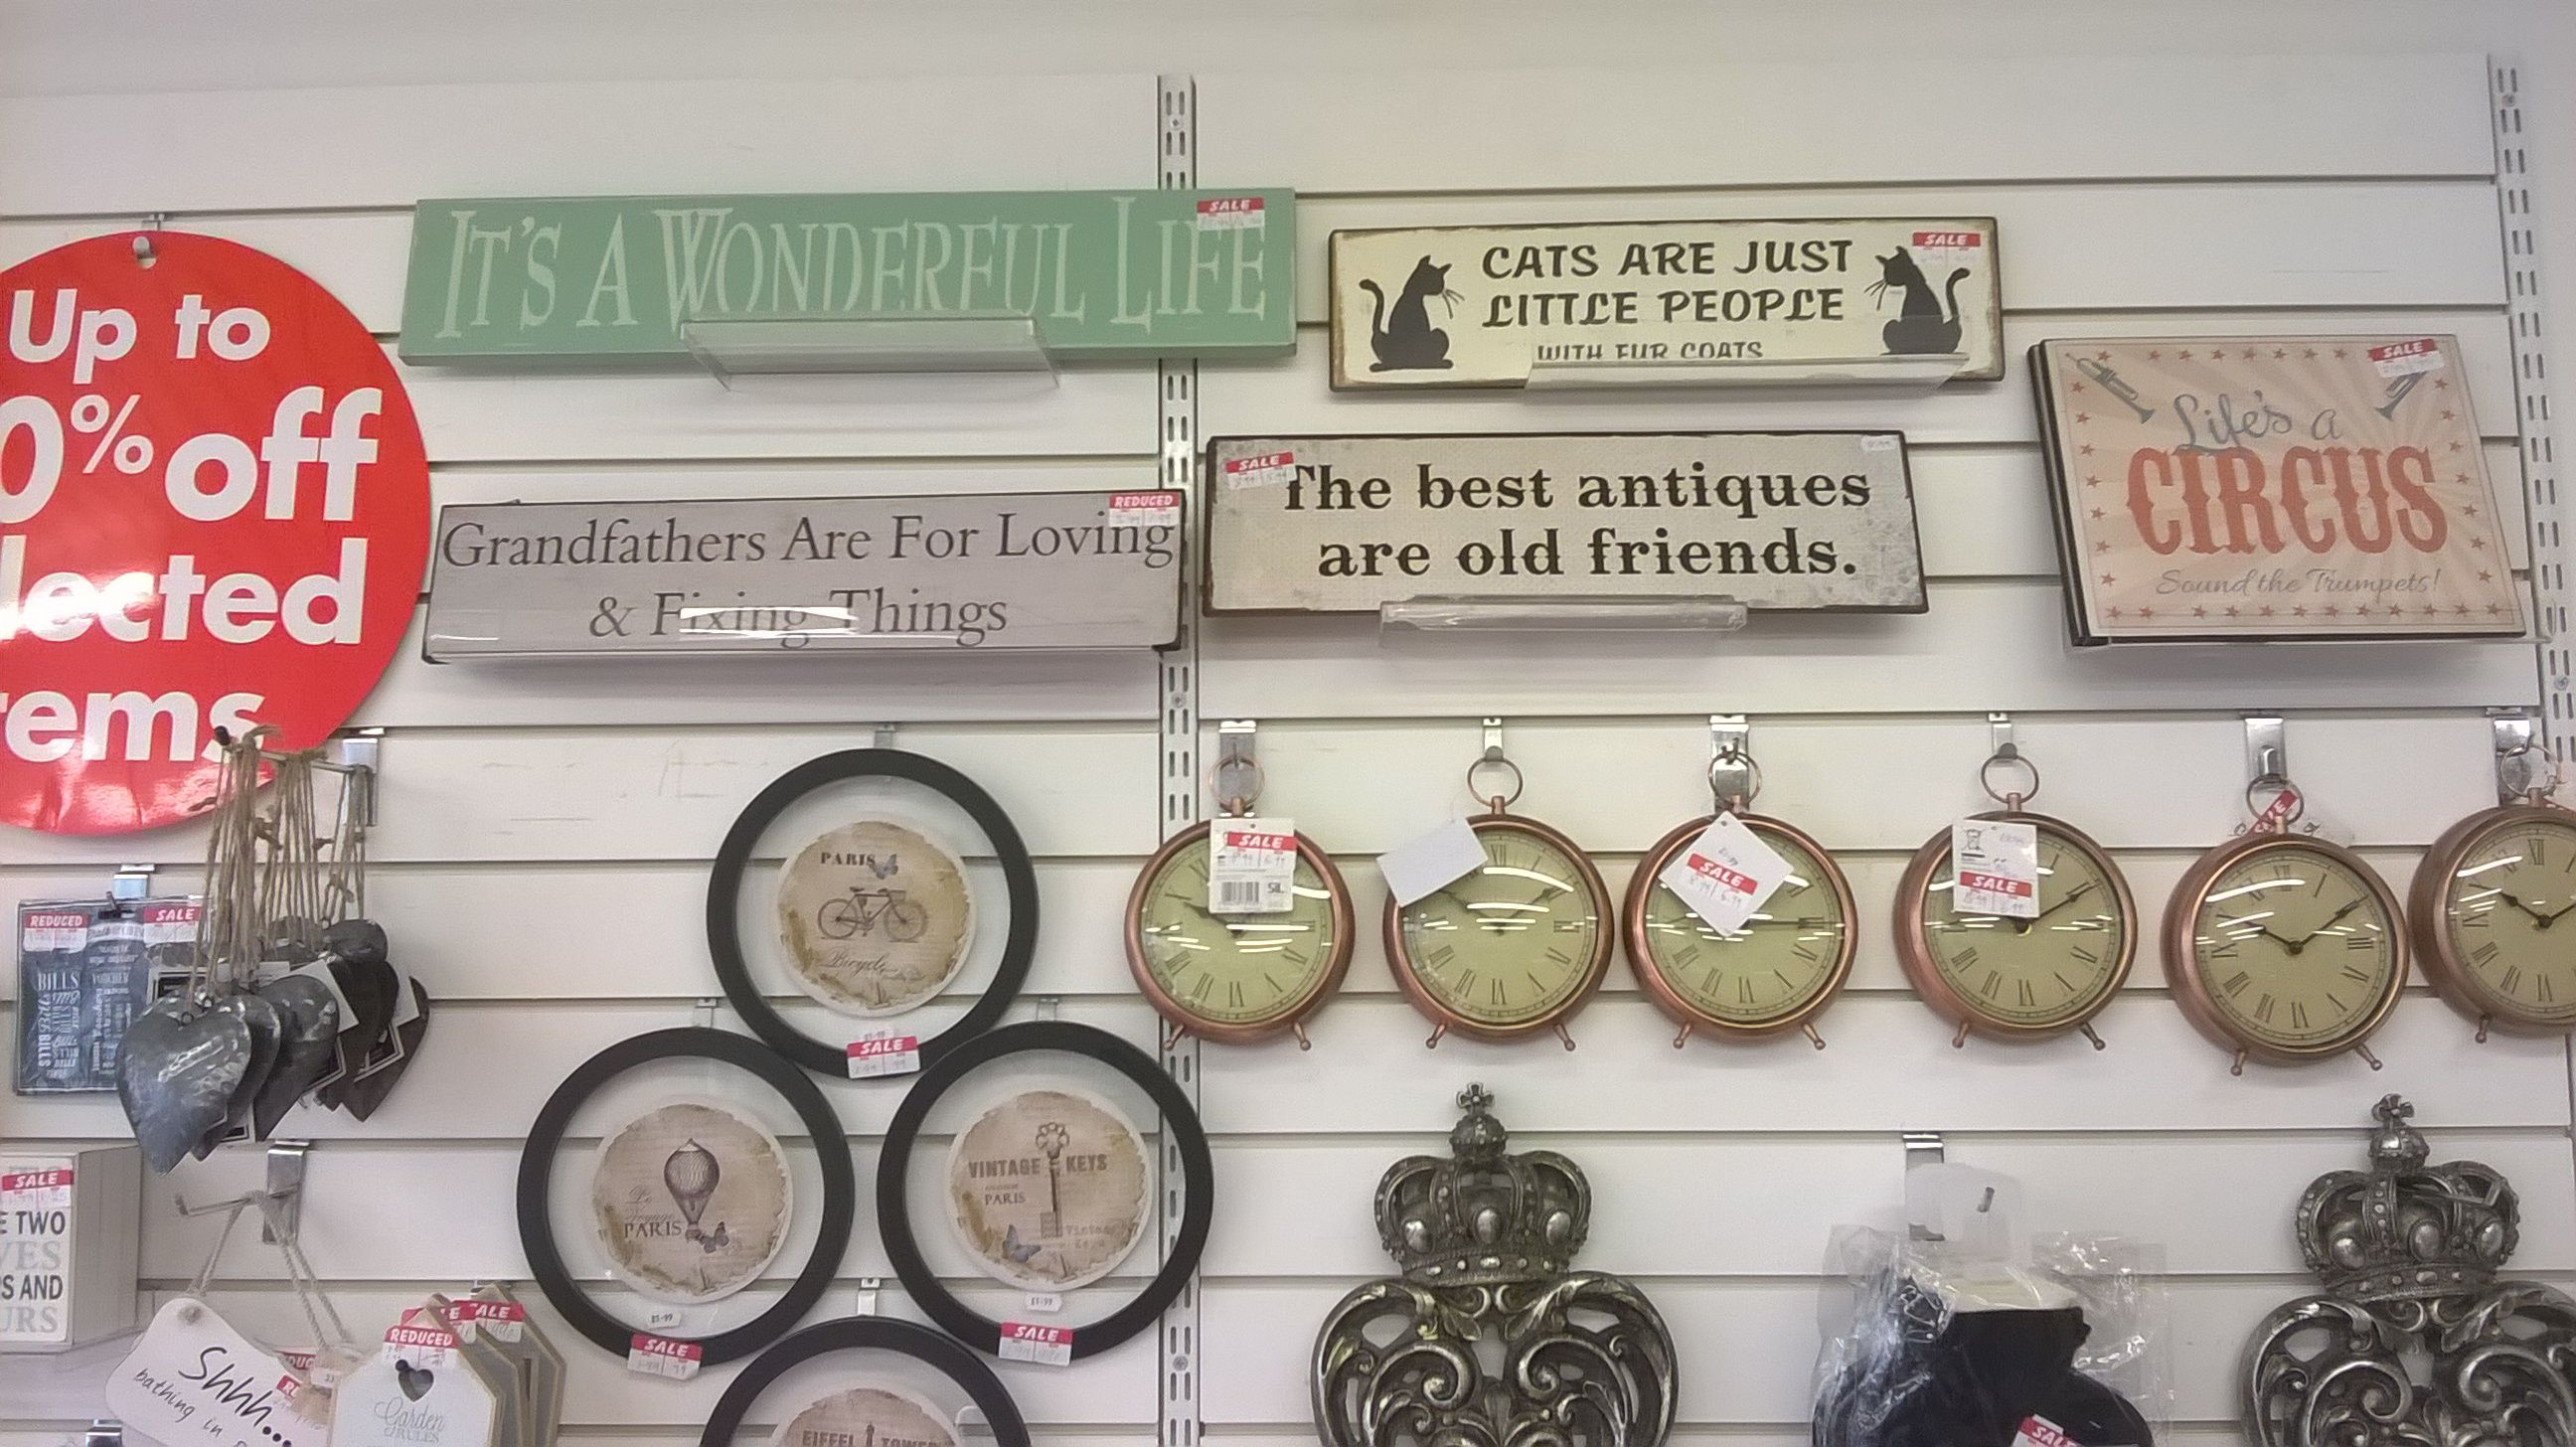 Gorgeous wall signs and plaques in the P.D.S.A London Road, Brighton.